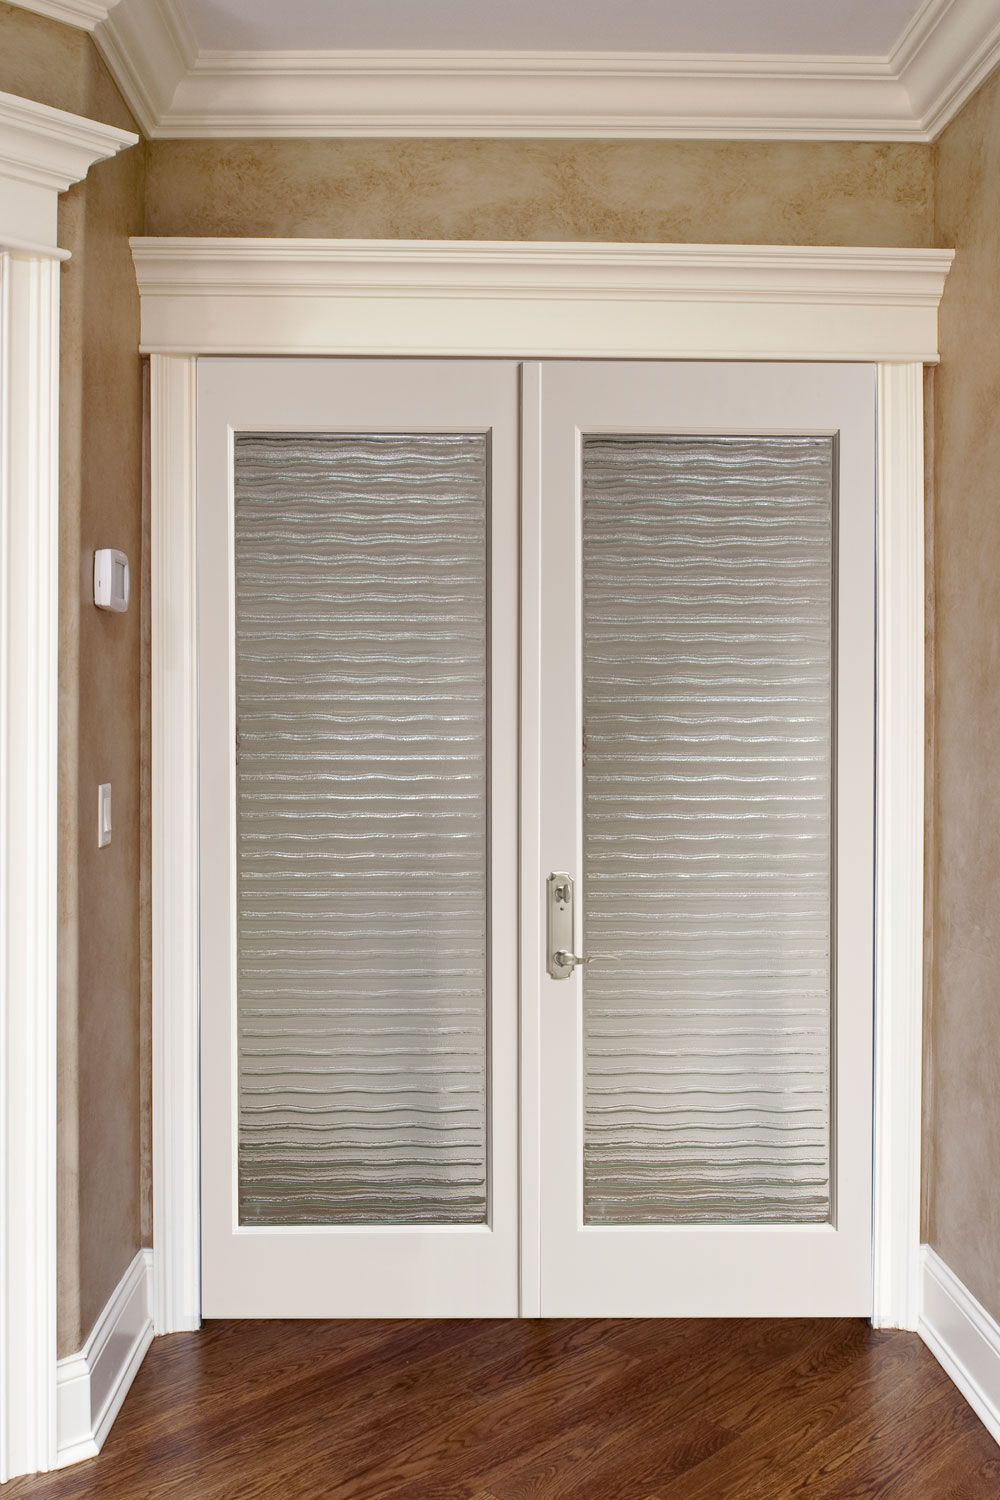 Le Meilleur Interior Door Custom Double Solid Wood With White Ce Mois Ci